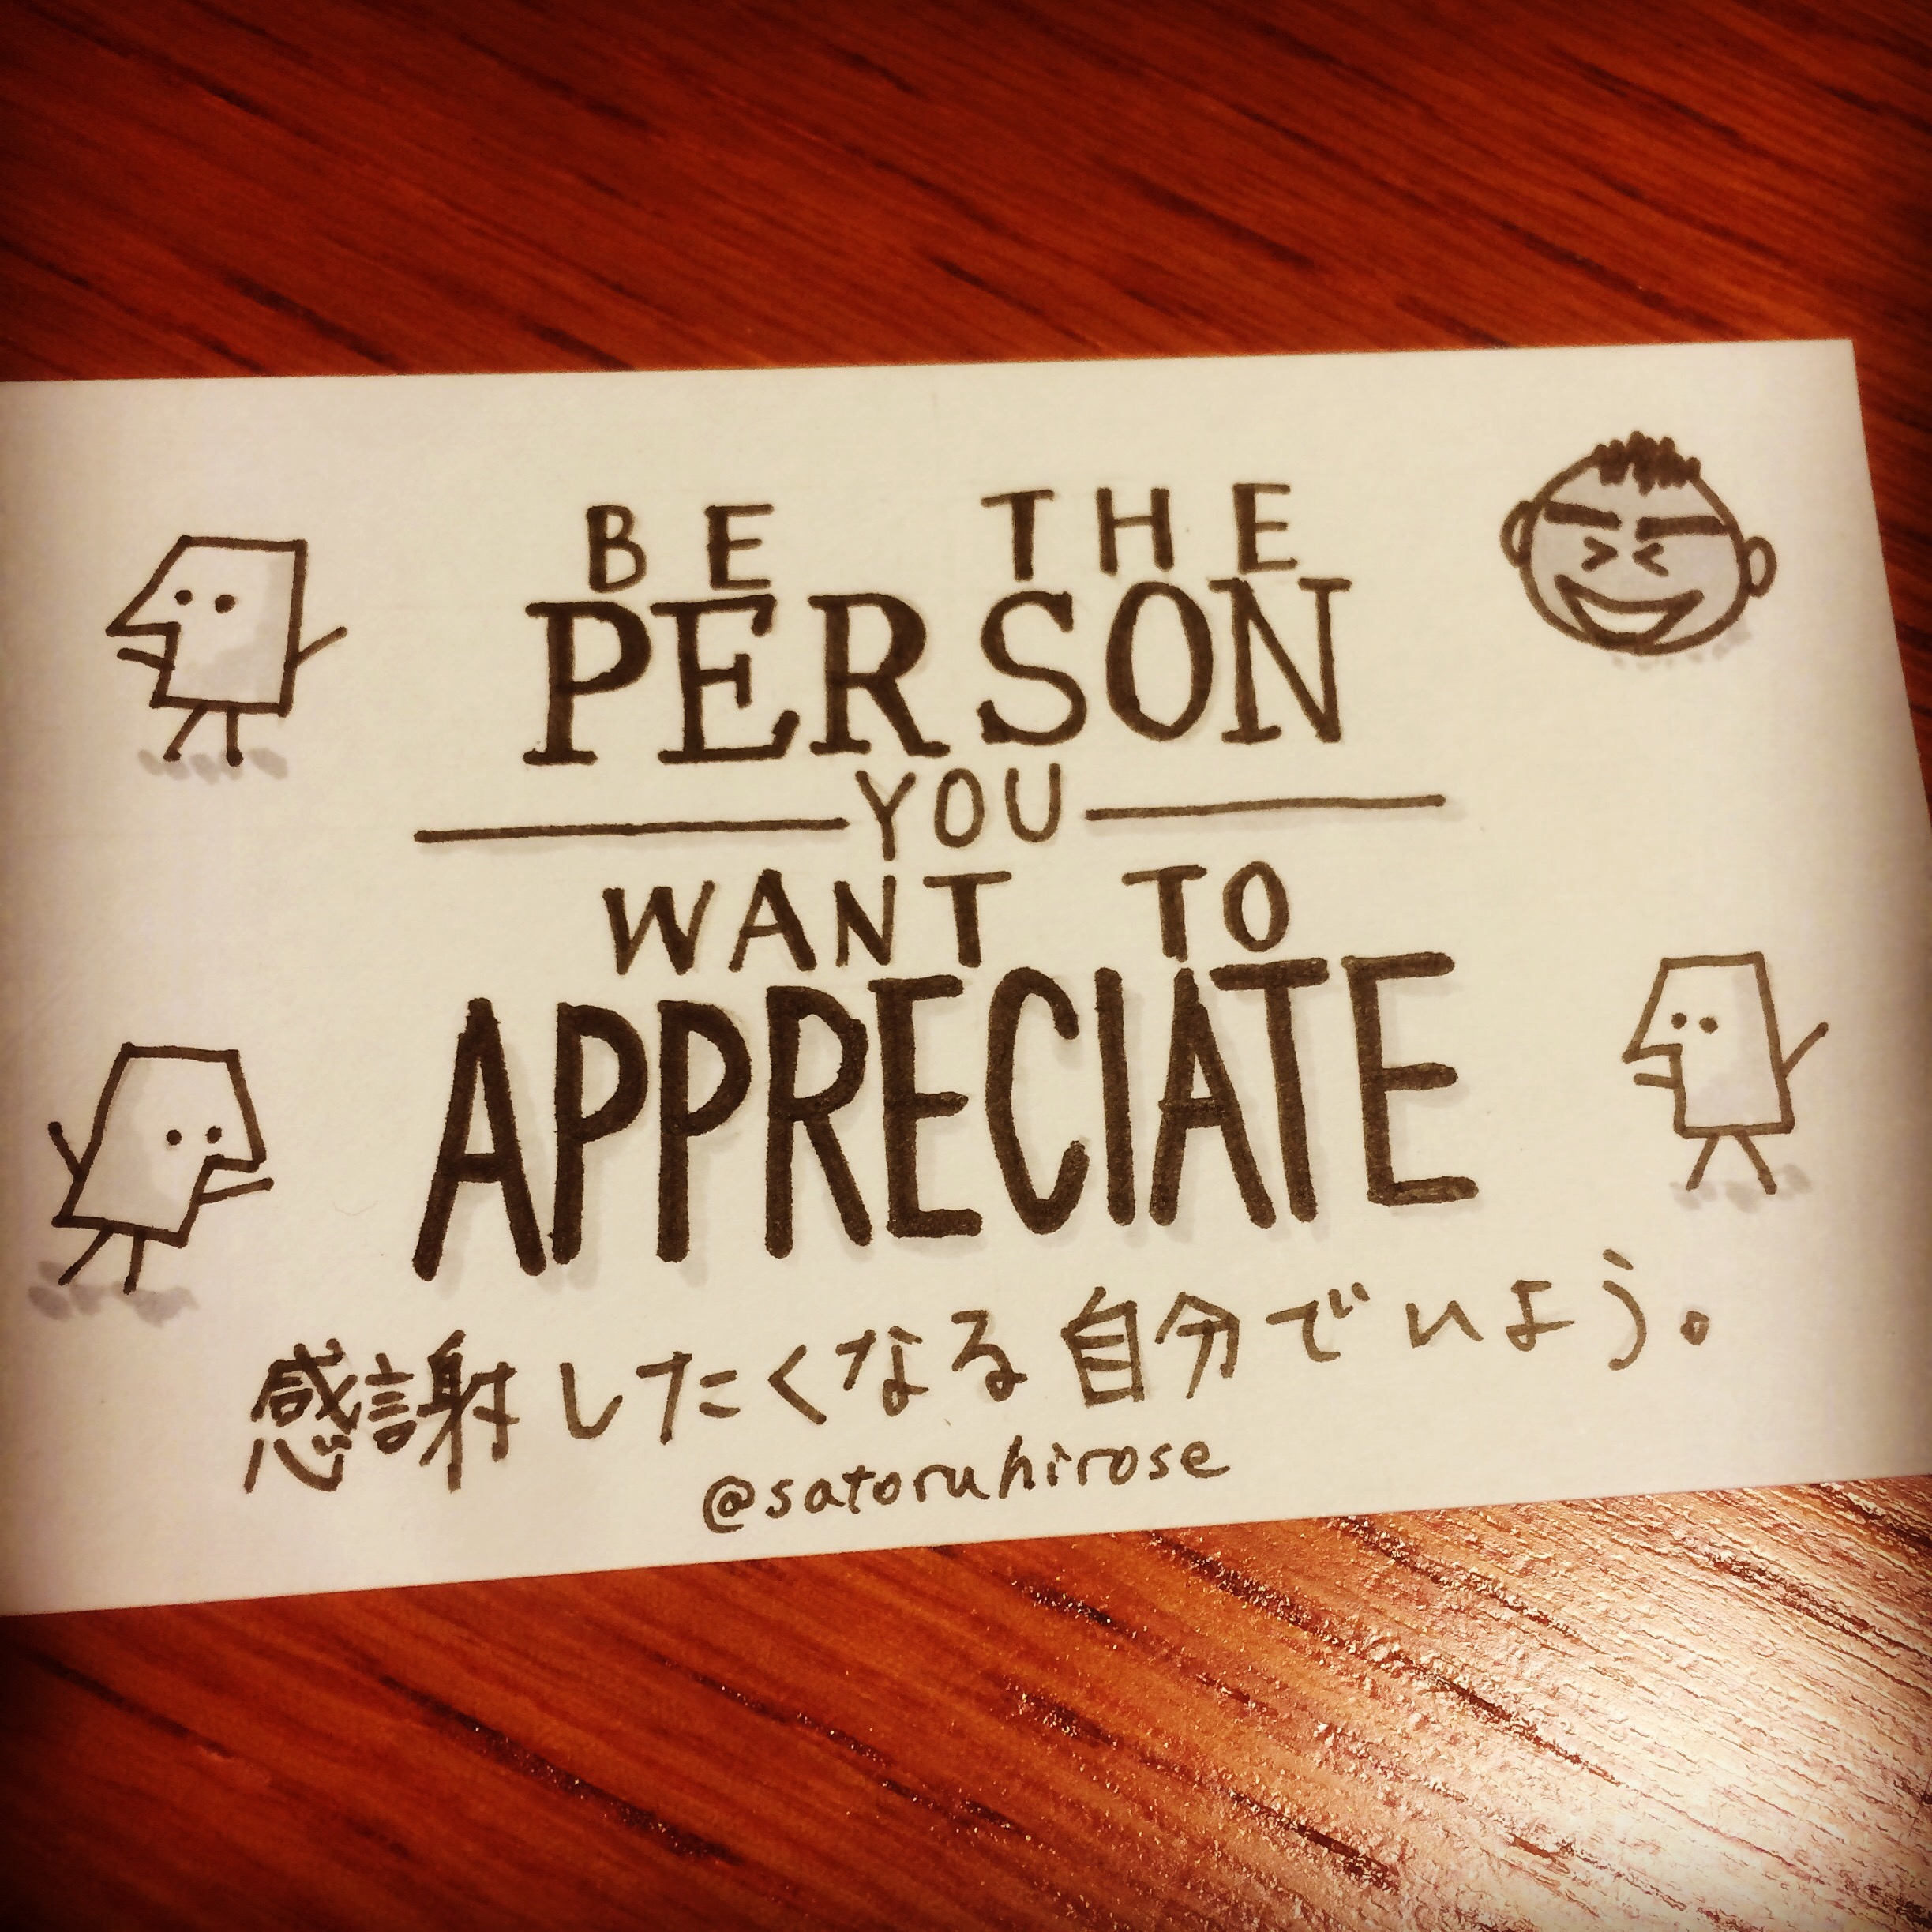 Be the person you want to appreciate.